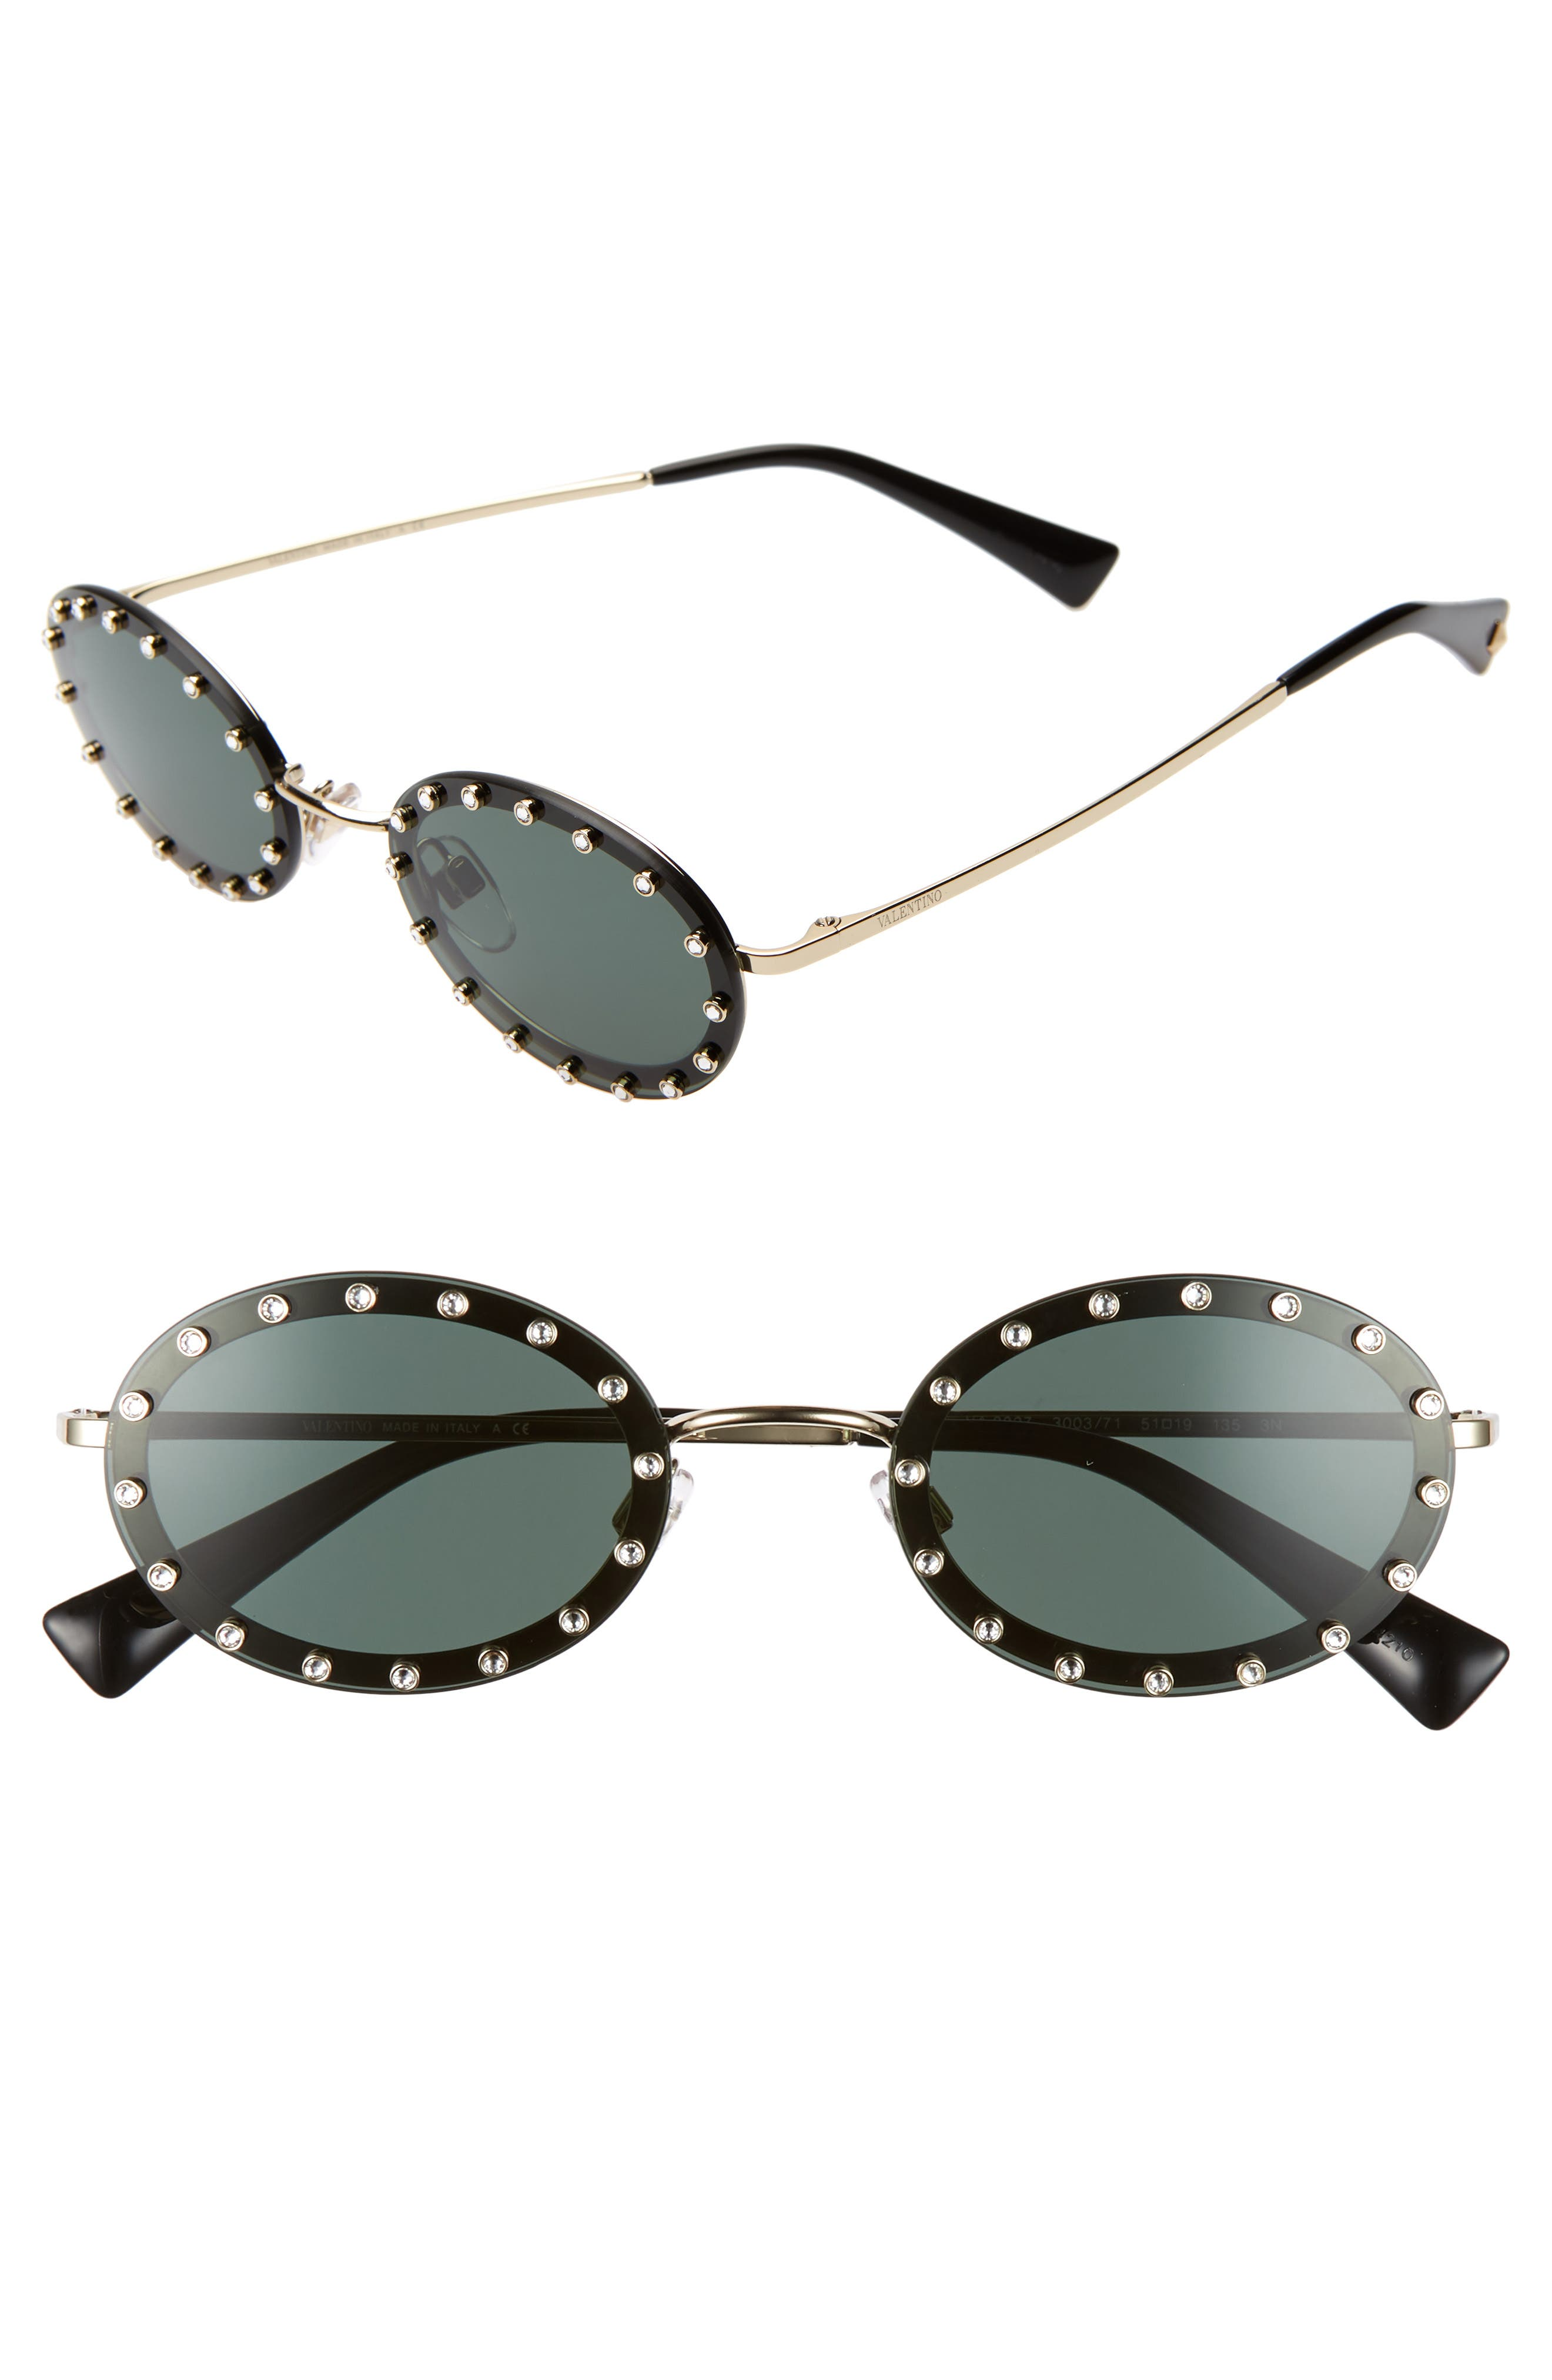 51mm Crystal Rockstud Oval Sunglasses,                             Main thumbnail 1, color,                             BLACK/ GREEN SOLID